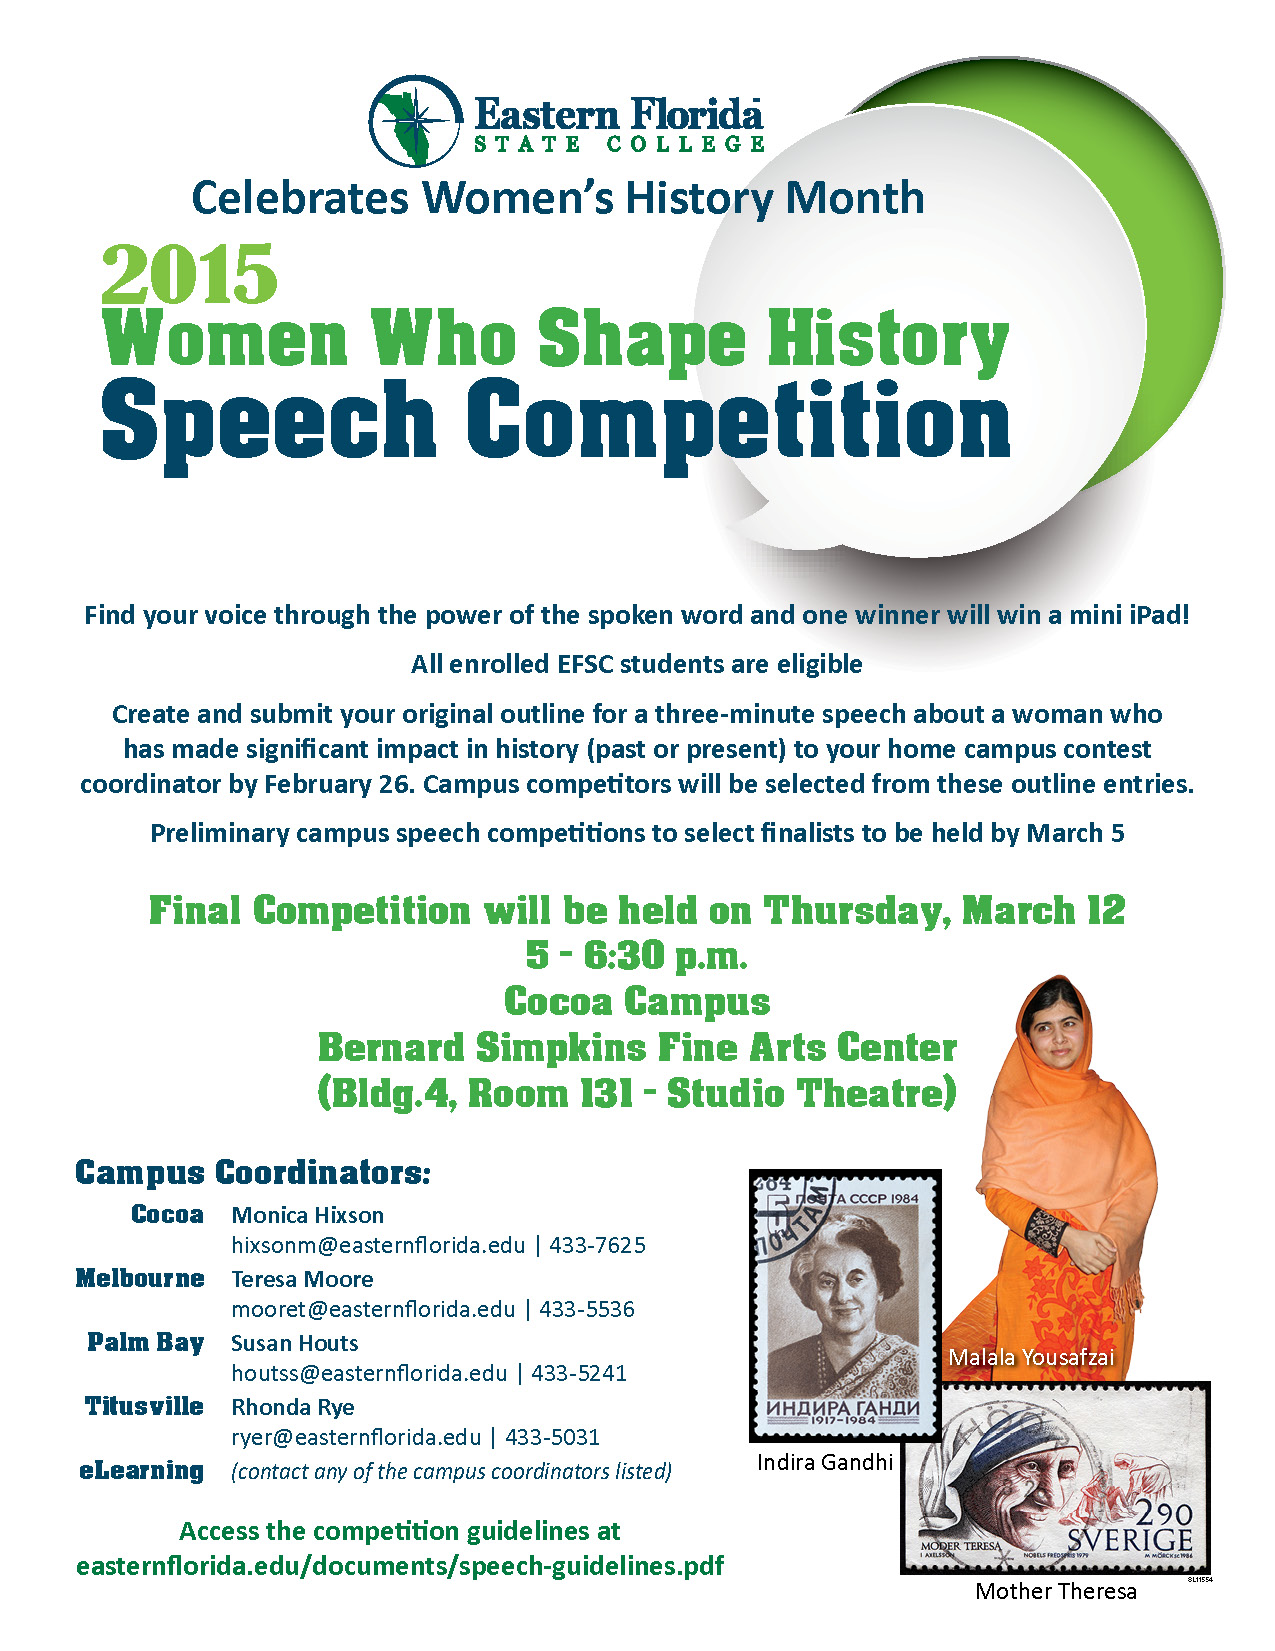 Eastern Florida State College Cocoa >> Eastern Florida State College | Women Who Shape History Speech Competition